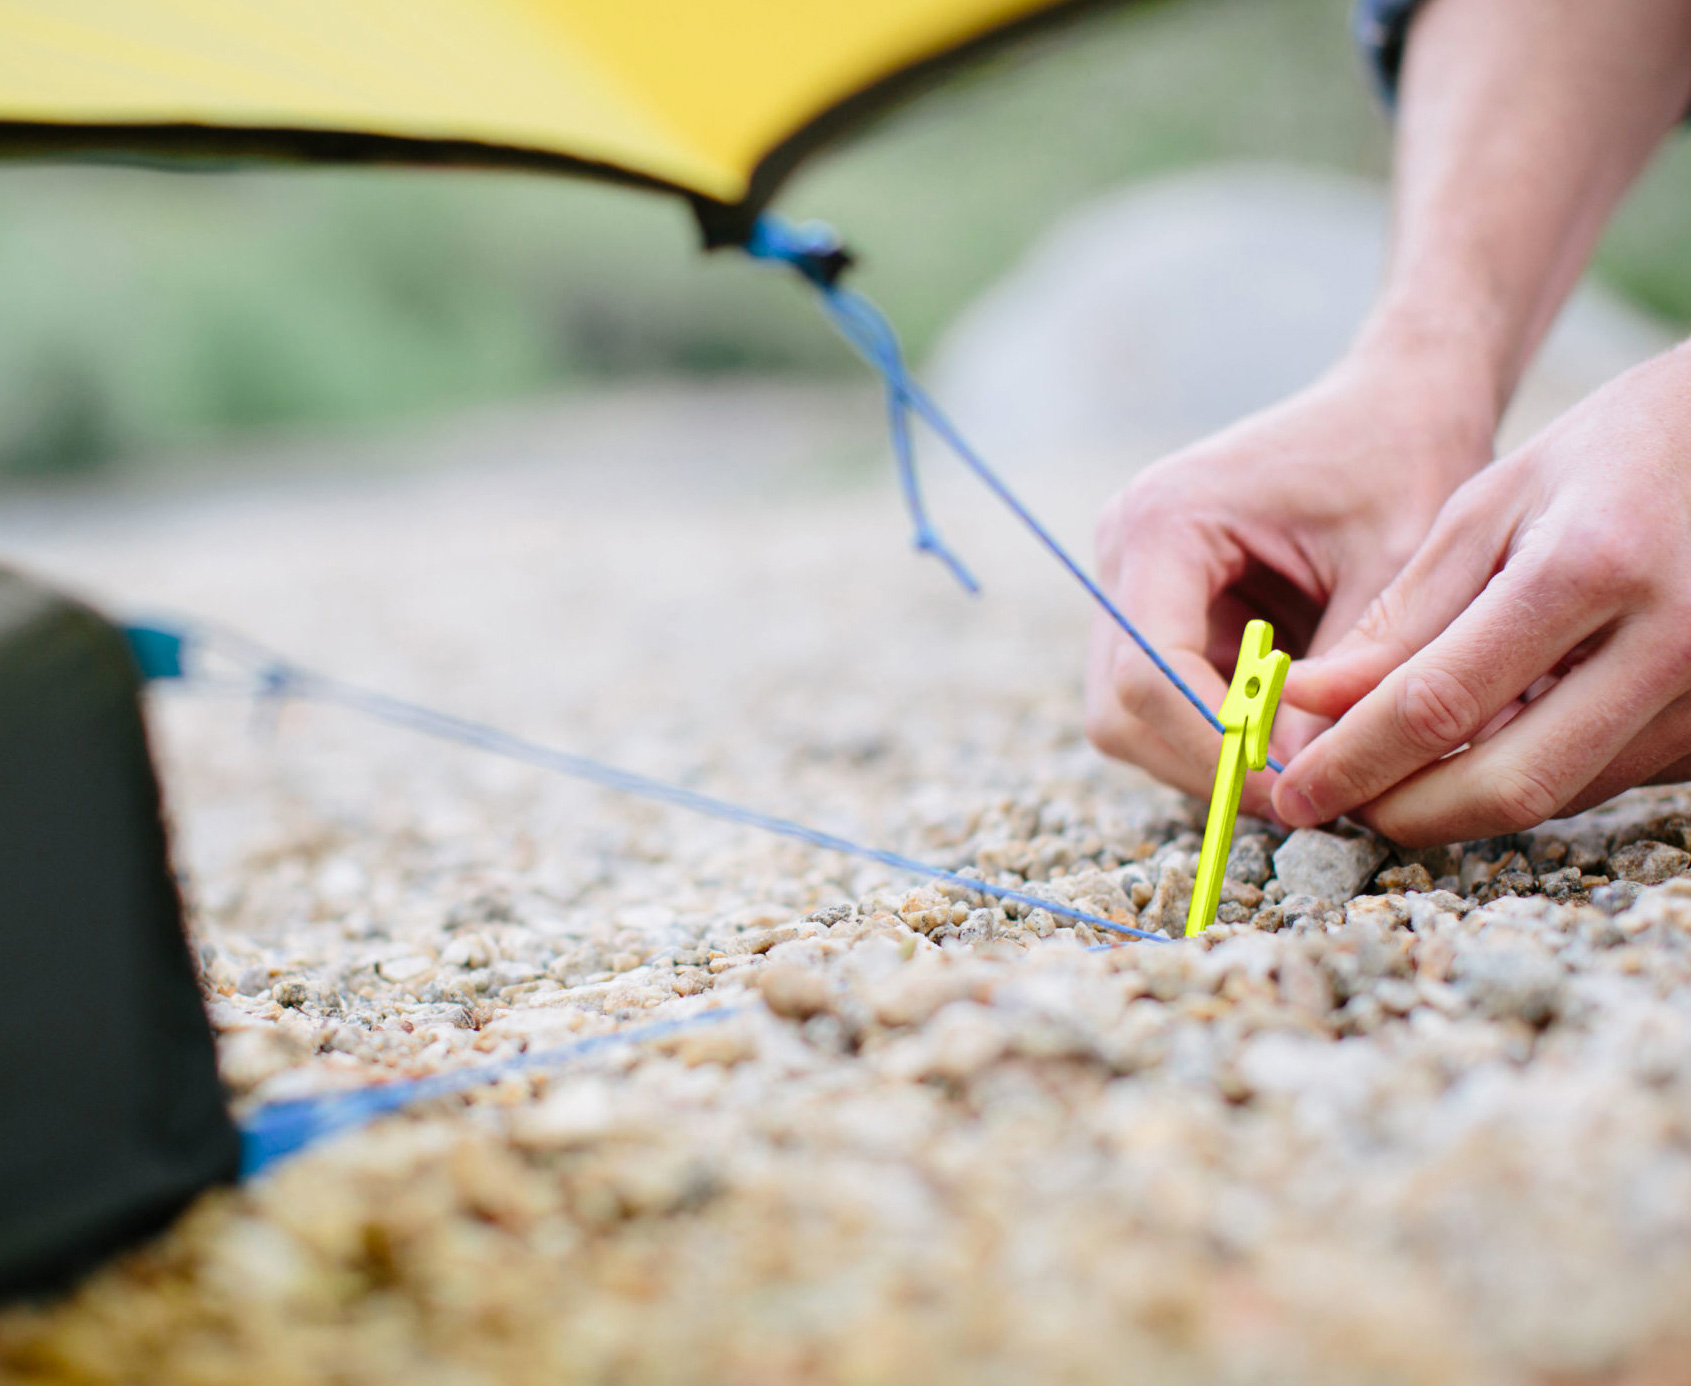 Lighten Your Load with Nemo's Airpin Ultralight Tent Stakes at werd.com